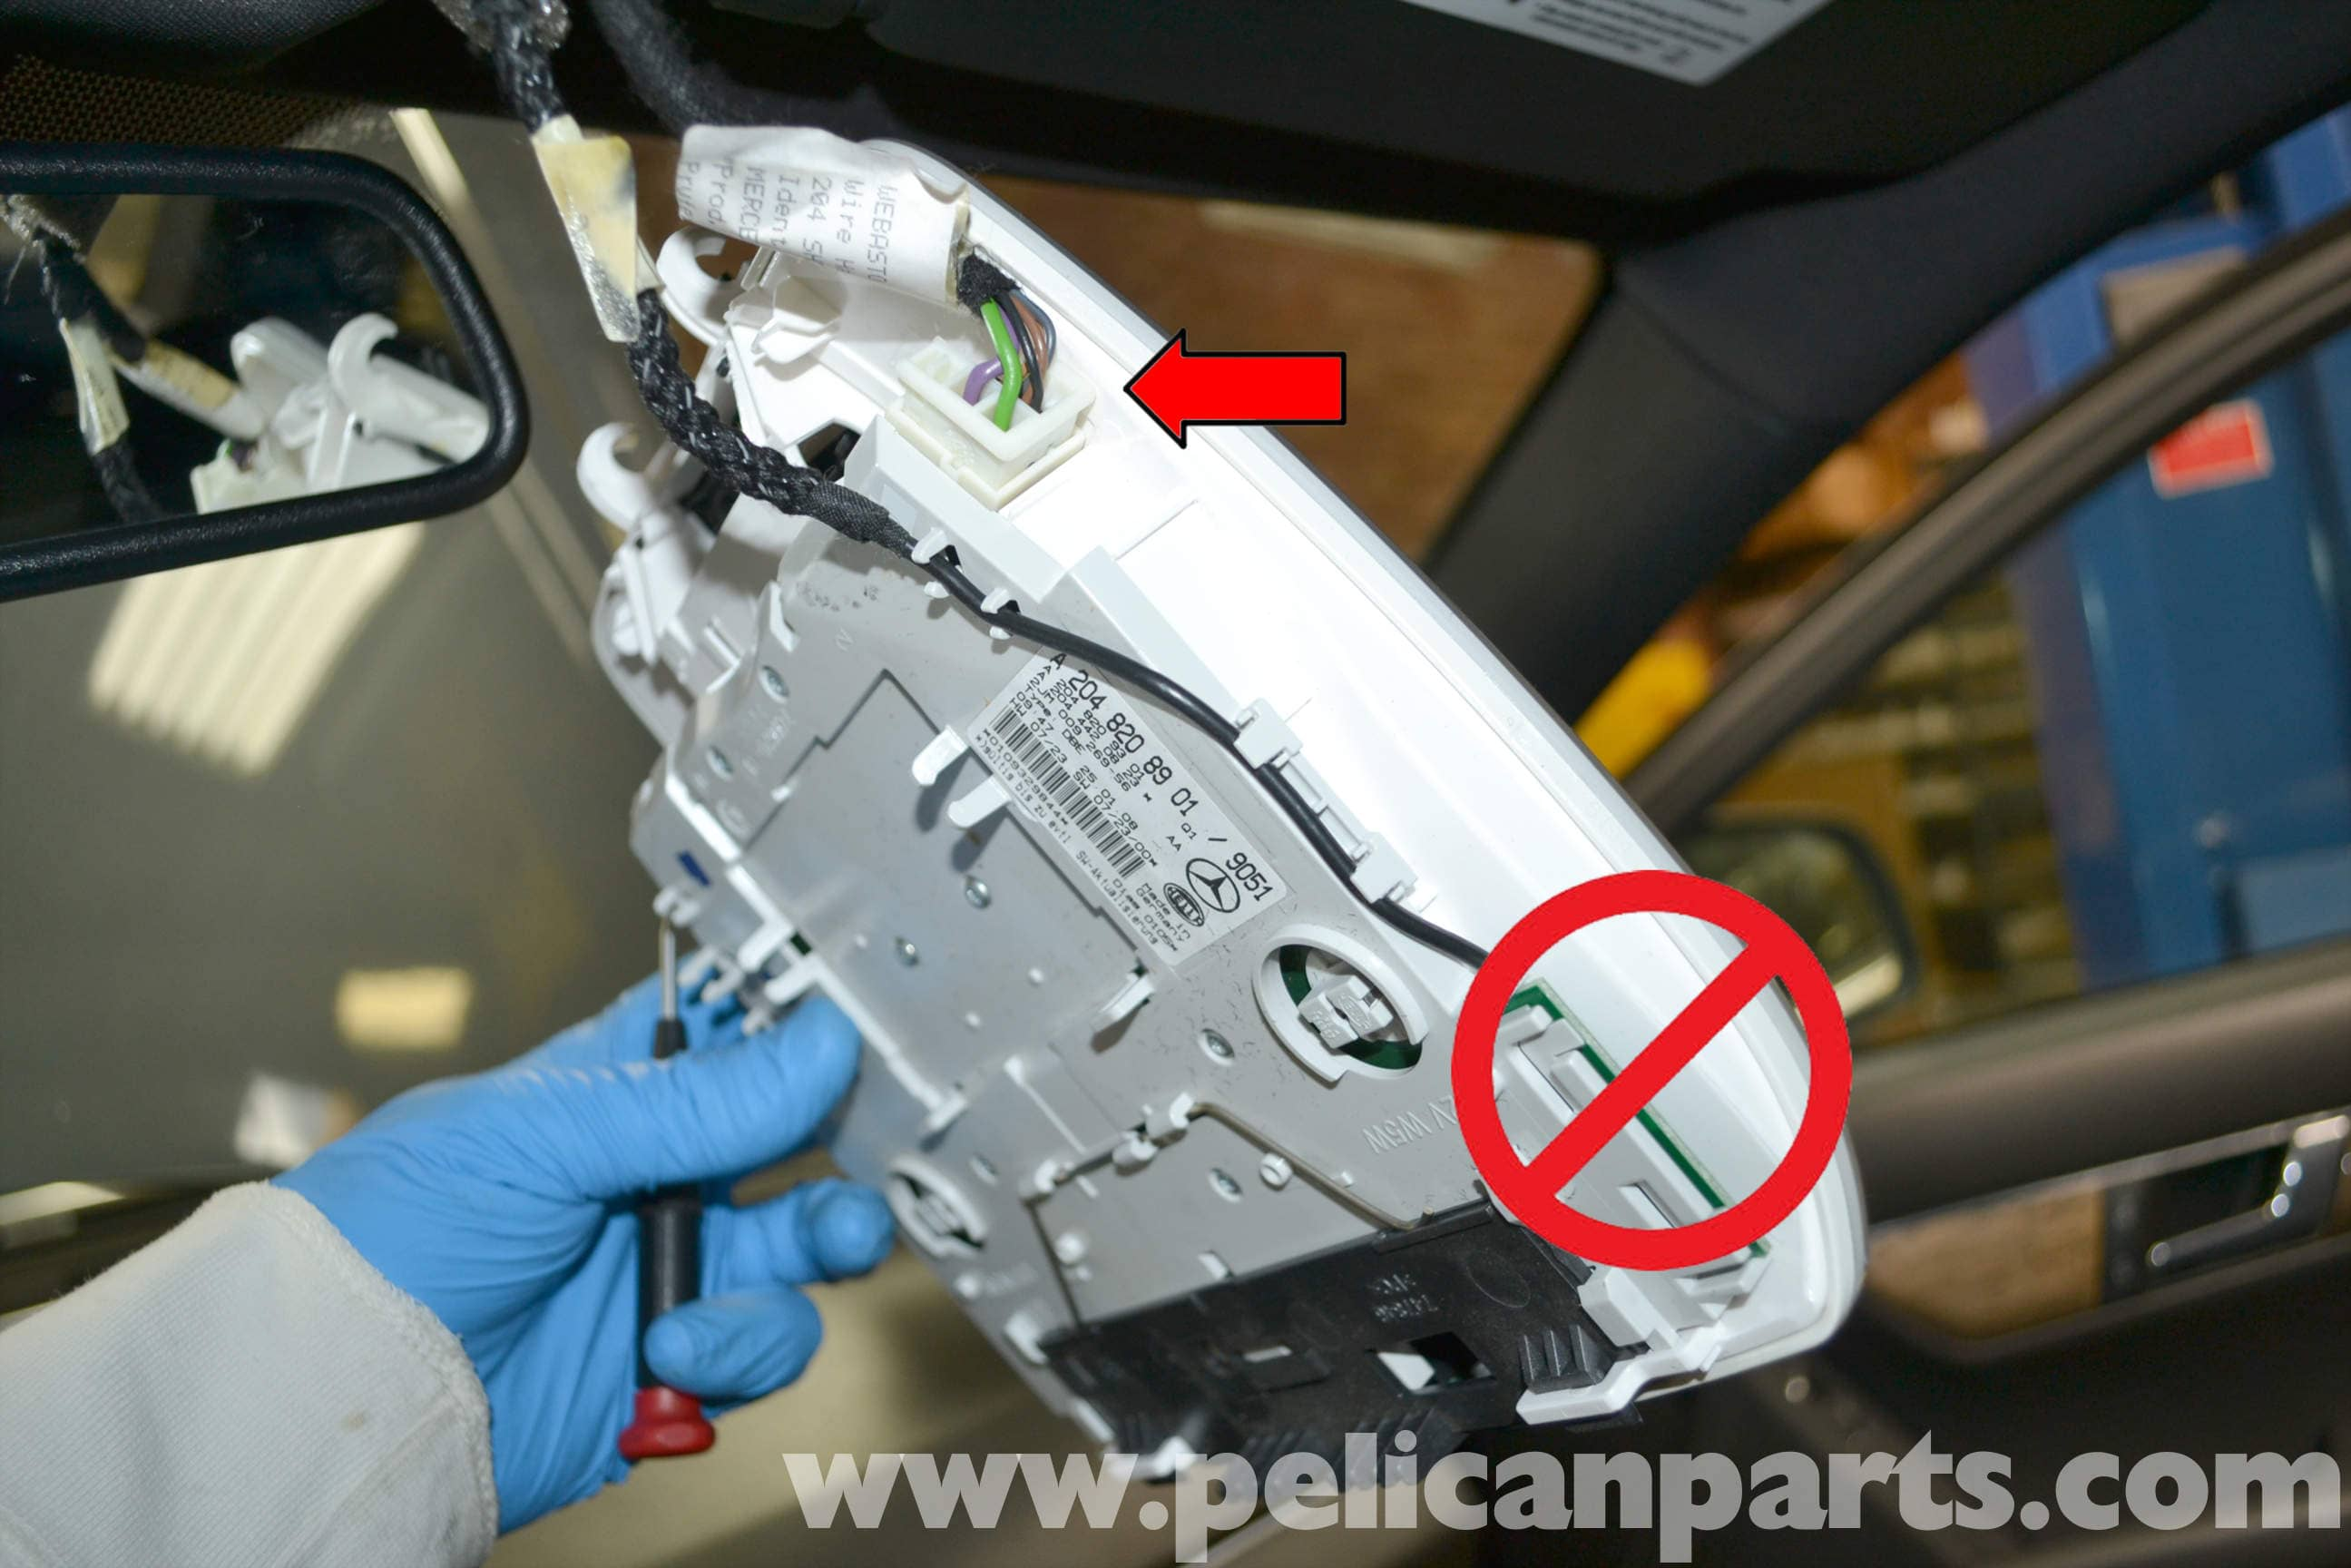 Mercedes-Benz W204 Overhead Console Replacement - (2008-2014) C250 ...